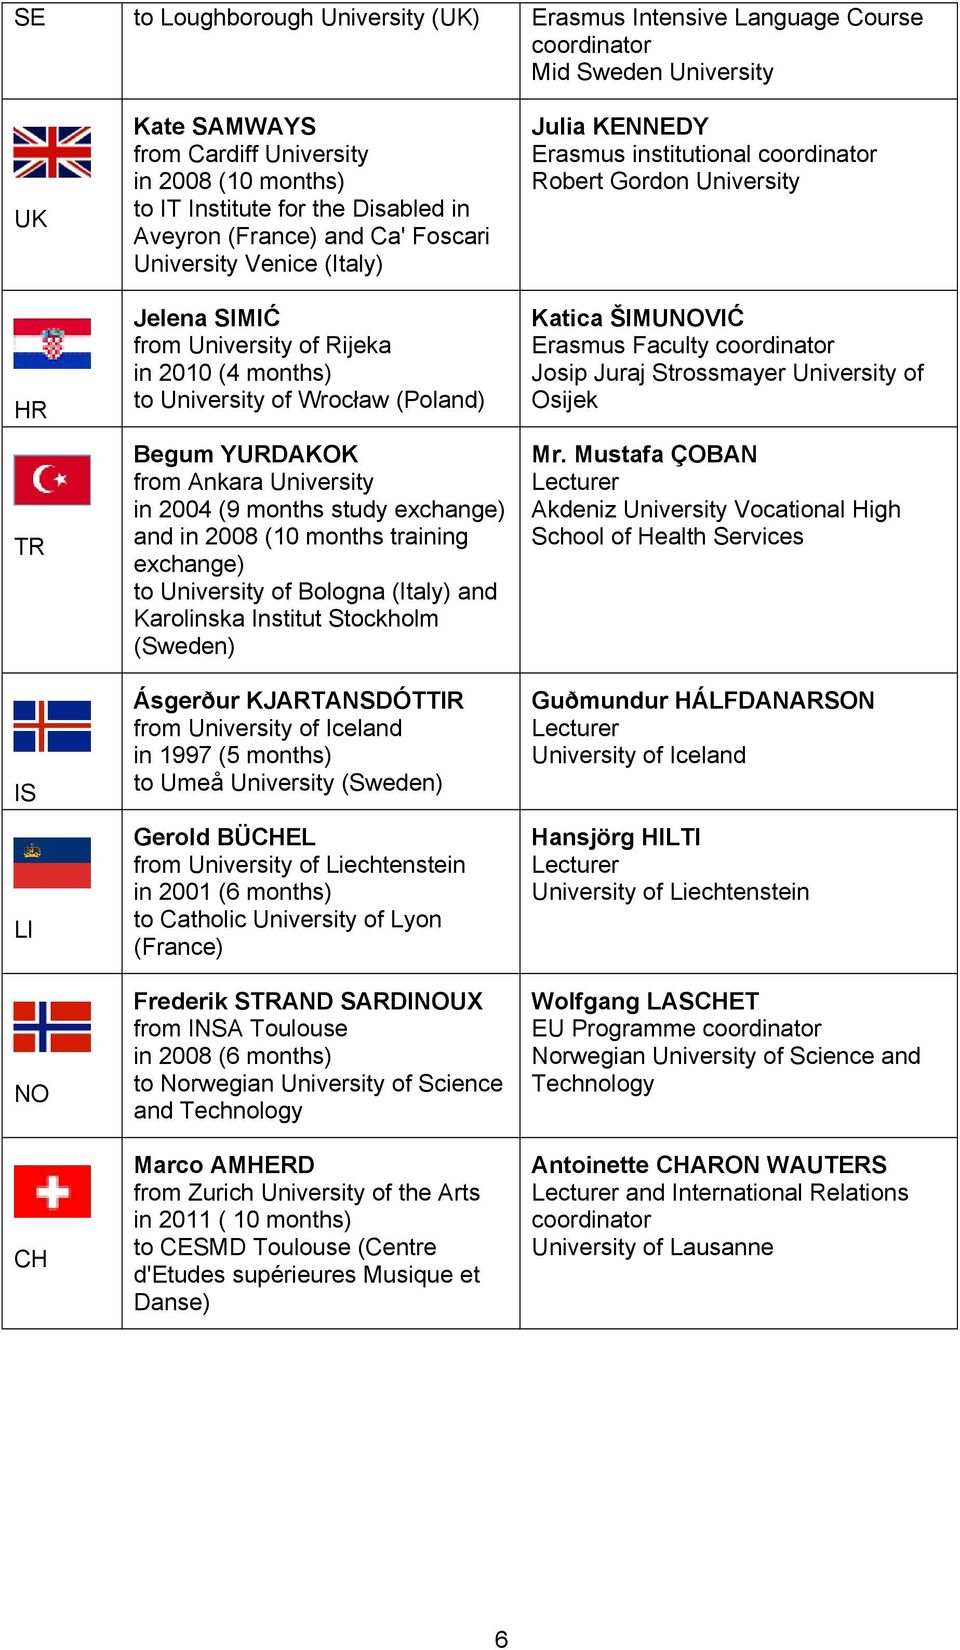 University in 2004 (9 months study exchange) and in 2008 (10 months training exchange) to University of Bologna (Italy) and Karolinska Institut Stockholm (Sweden) Ásgerður KJARTANSDÓTTIR from